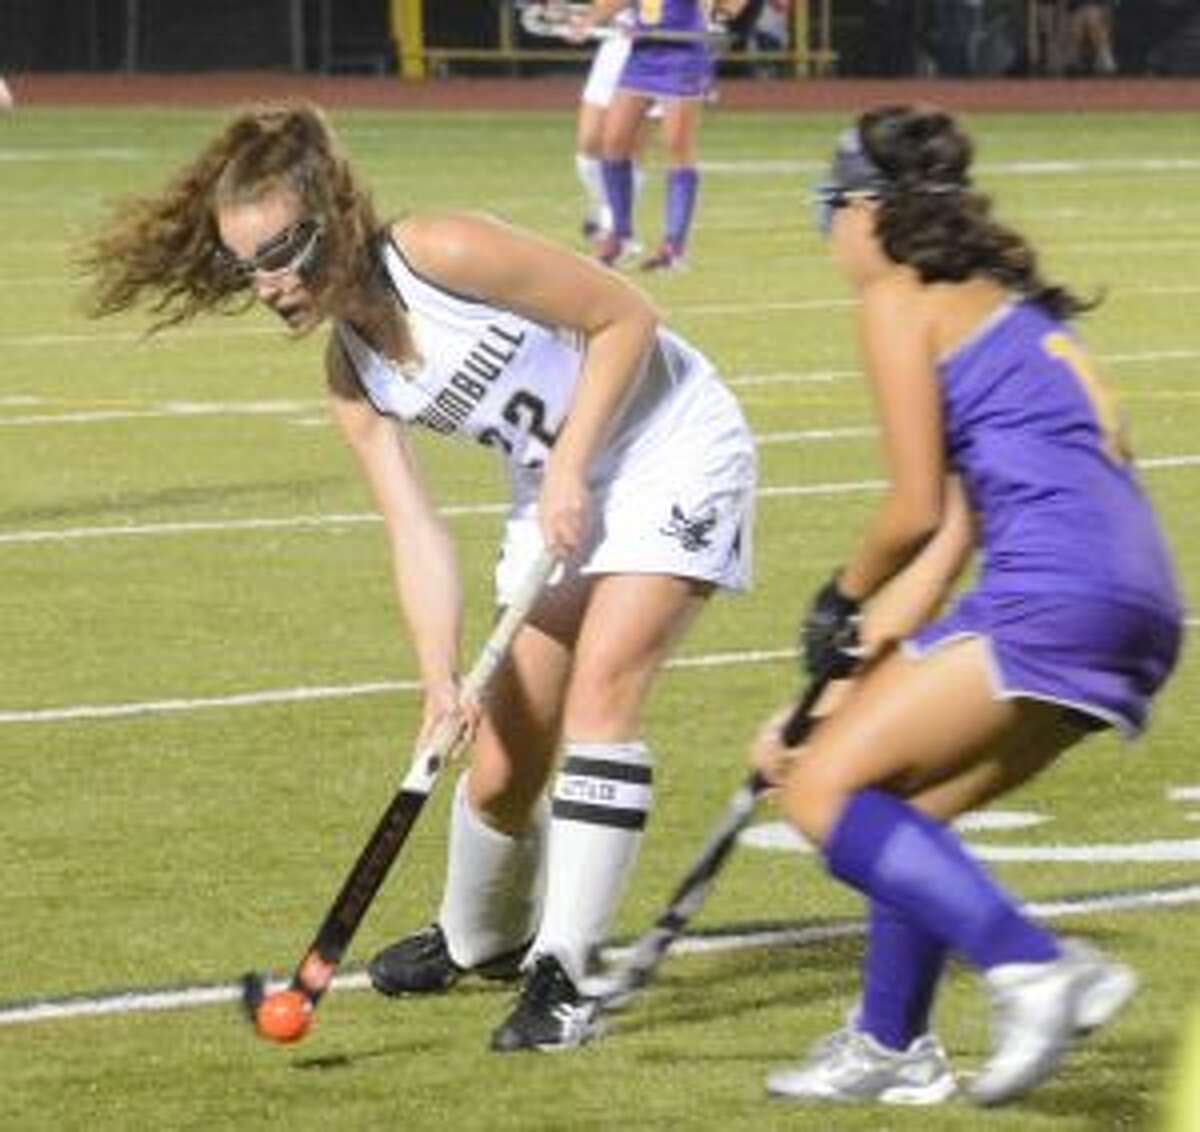 Trumbull's Mimi Leonard scored a goal and had an assist versus St. Joseph. -Andy Hutchison photo